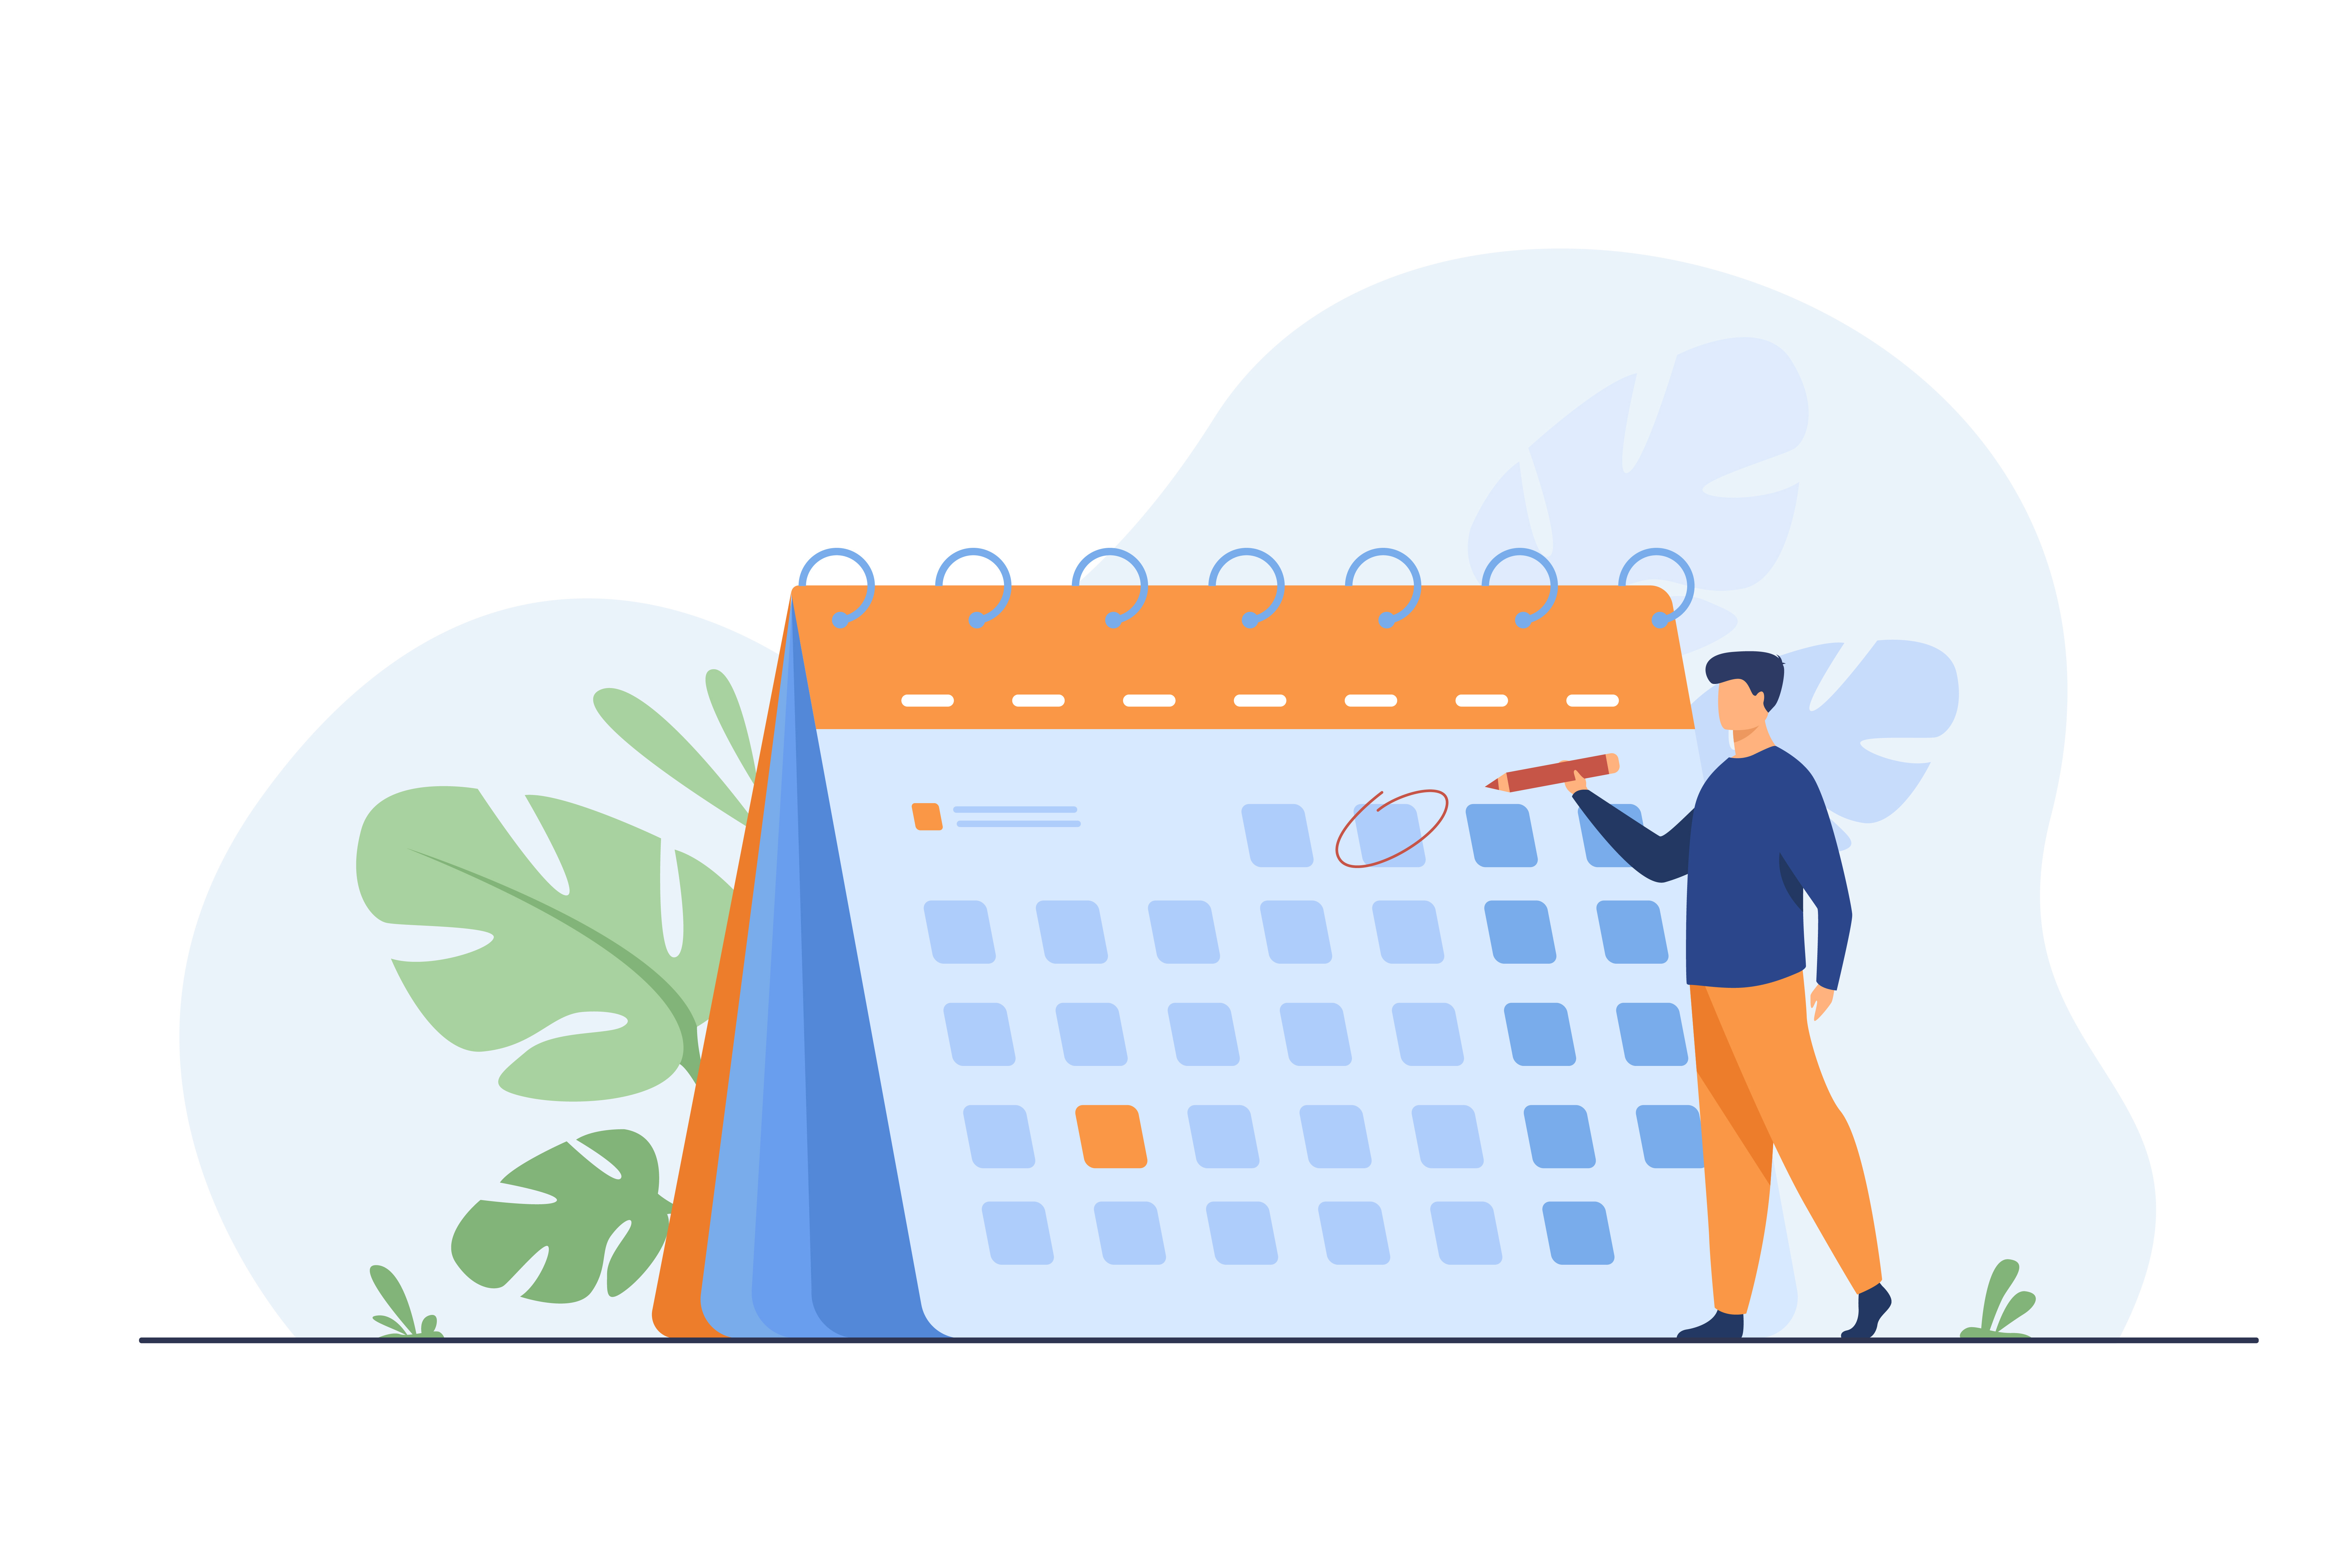 Keeping an up-to-date schedule is essential to remote working